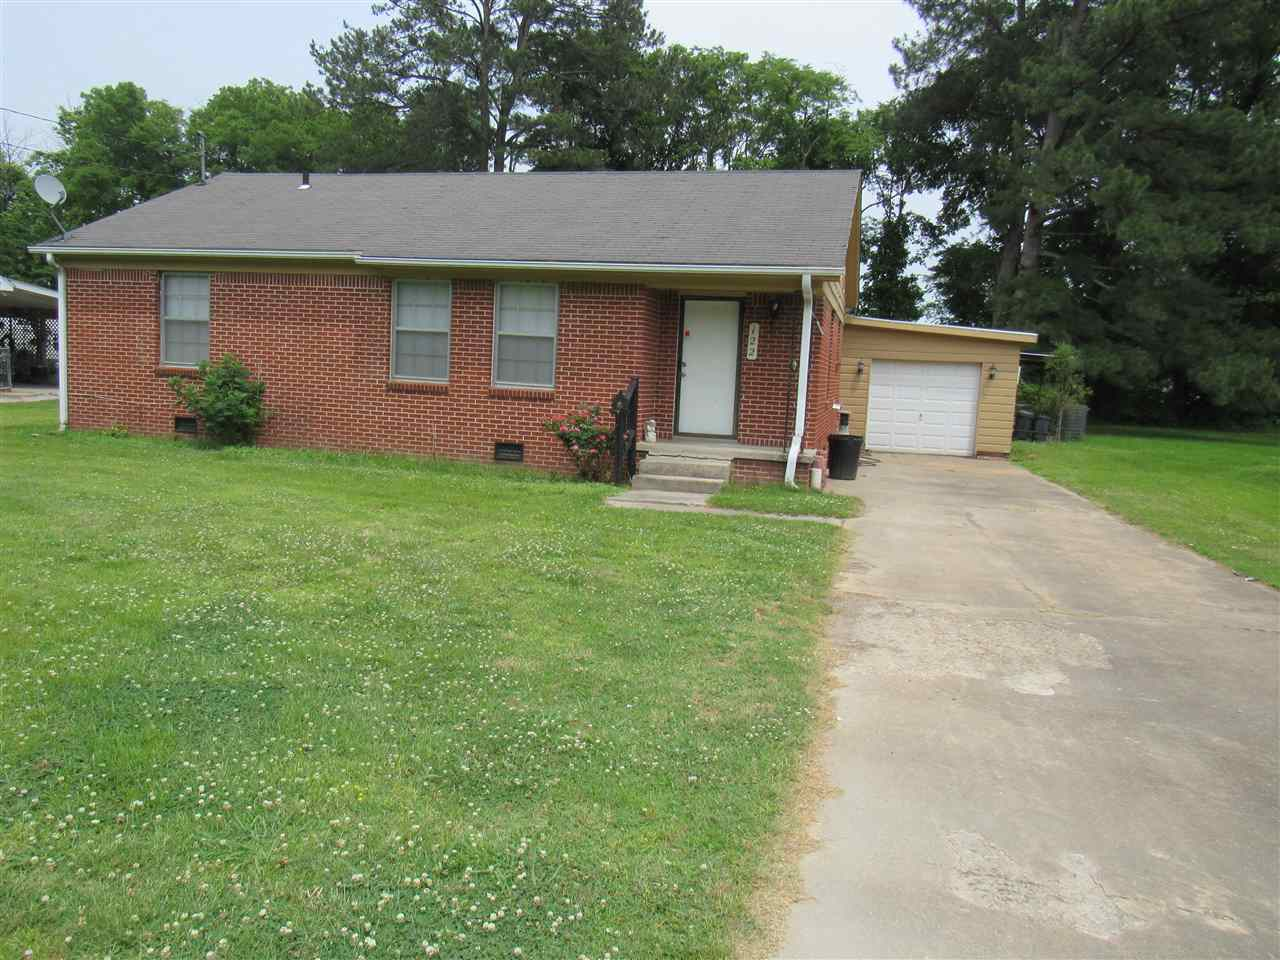 122 Eastlawn Dr, Dyersburg, Tennessee 38024, 3 Bedrooms Bedrooms, ,1 BathroomBathrooms,Residential,For Sale,122 Eastlawn Dr,188557